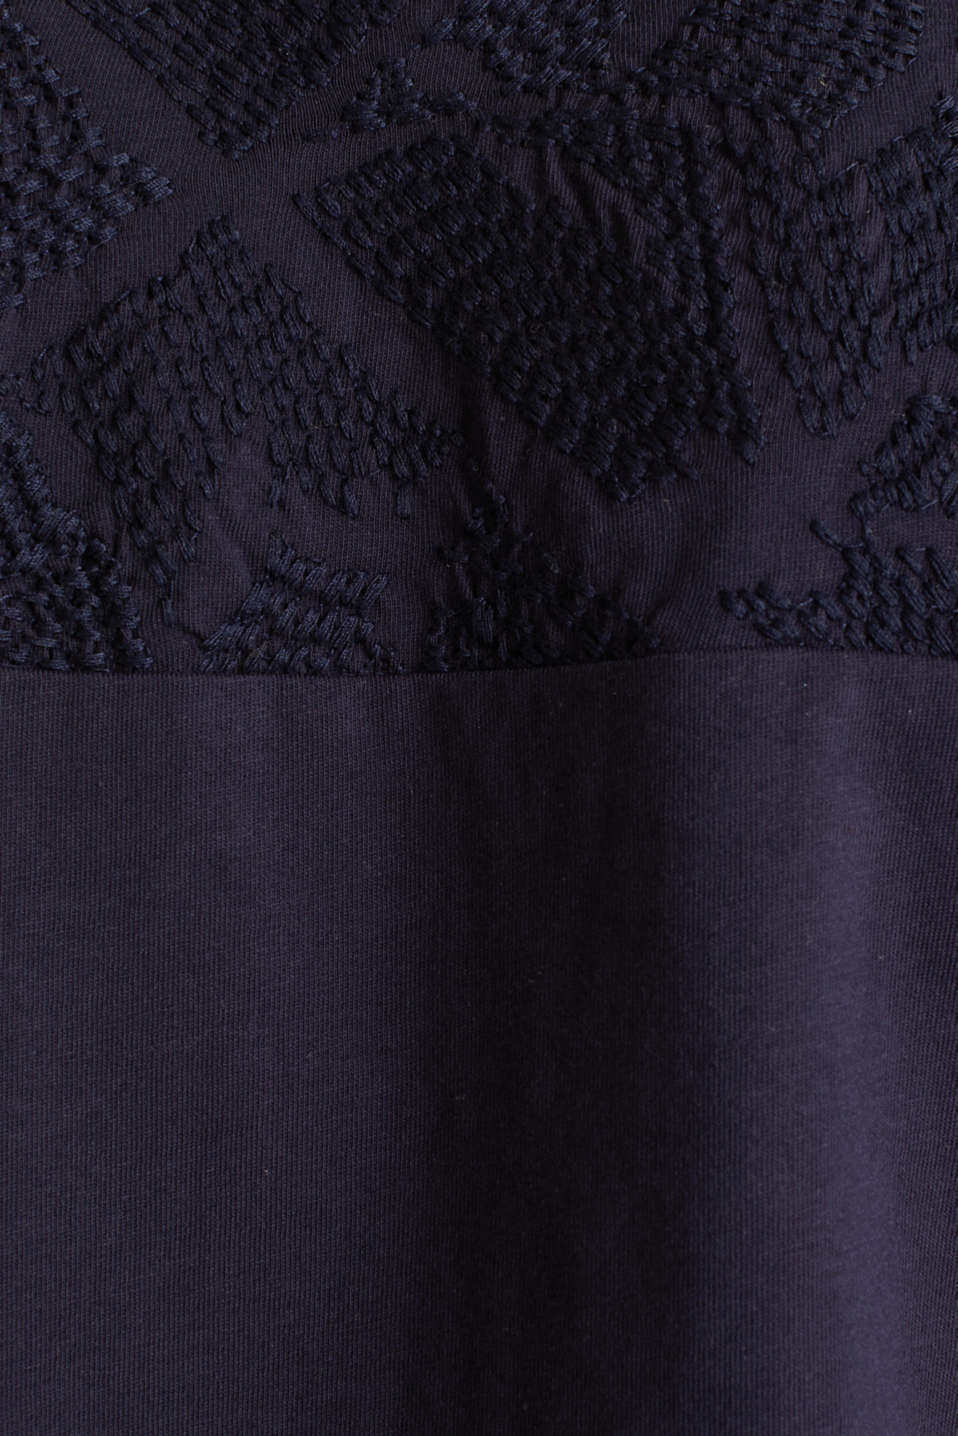 T-shirt with embroidery, 100% organic cotton, NAVY, detail image number 4